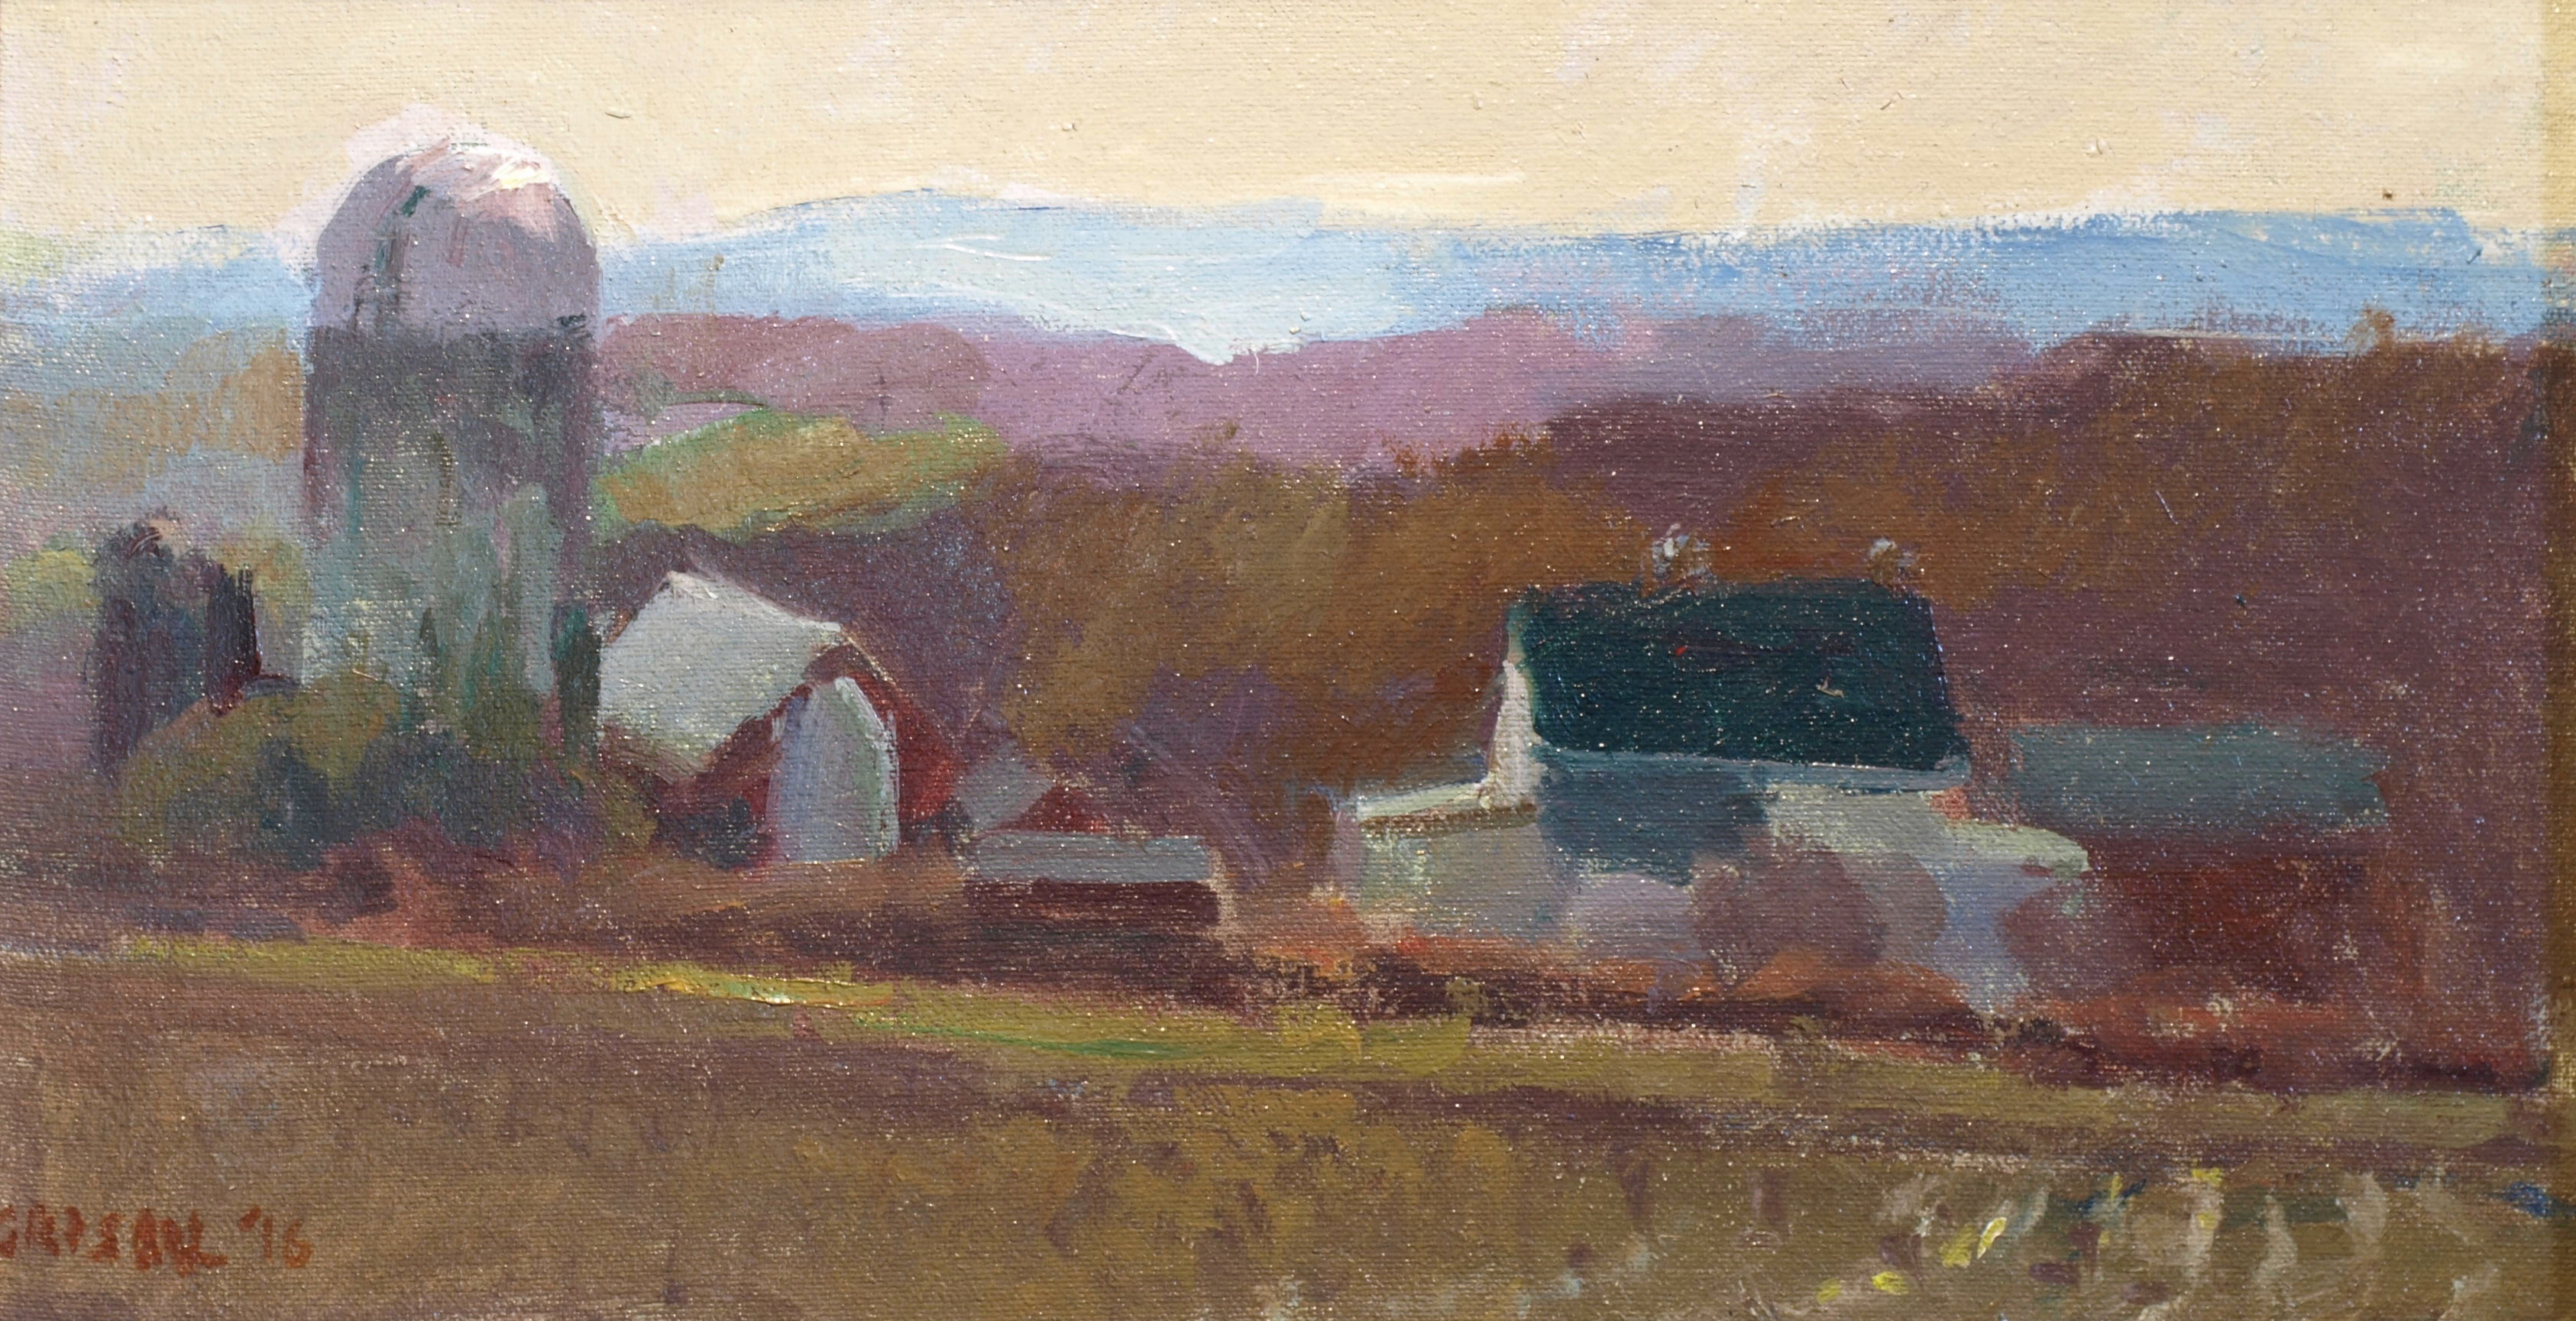 Mild Winter Day, Oil on Canvas on Panel, 9 x 16 Inches, by Susan Grisell, $275